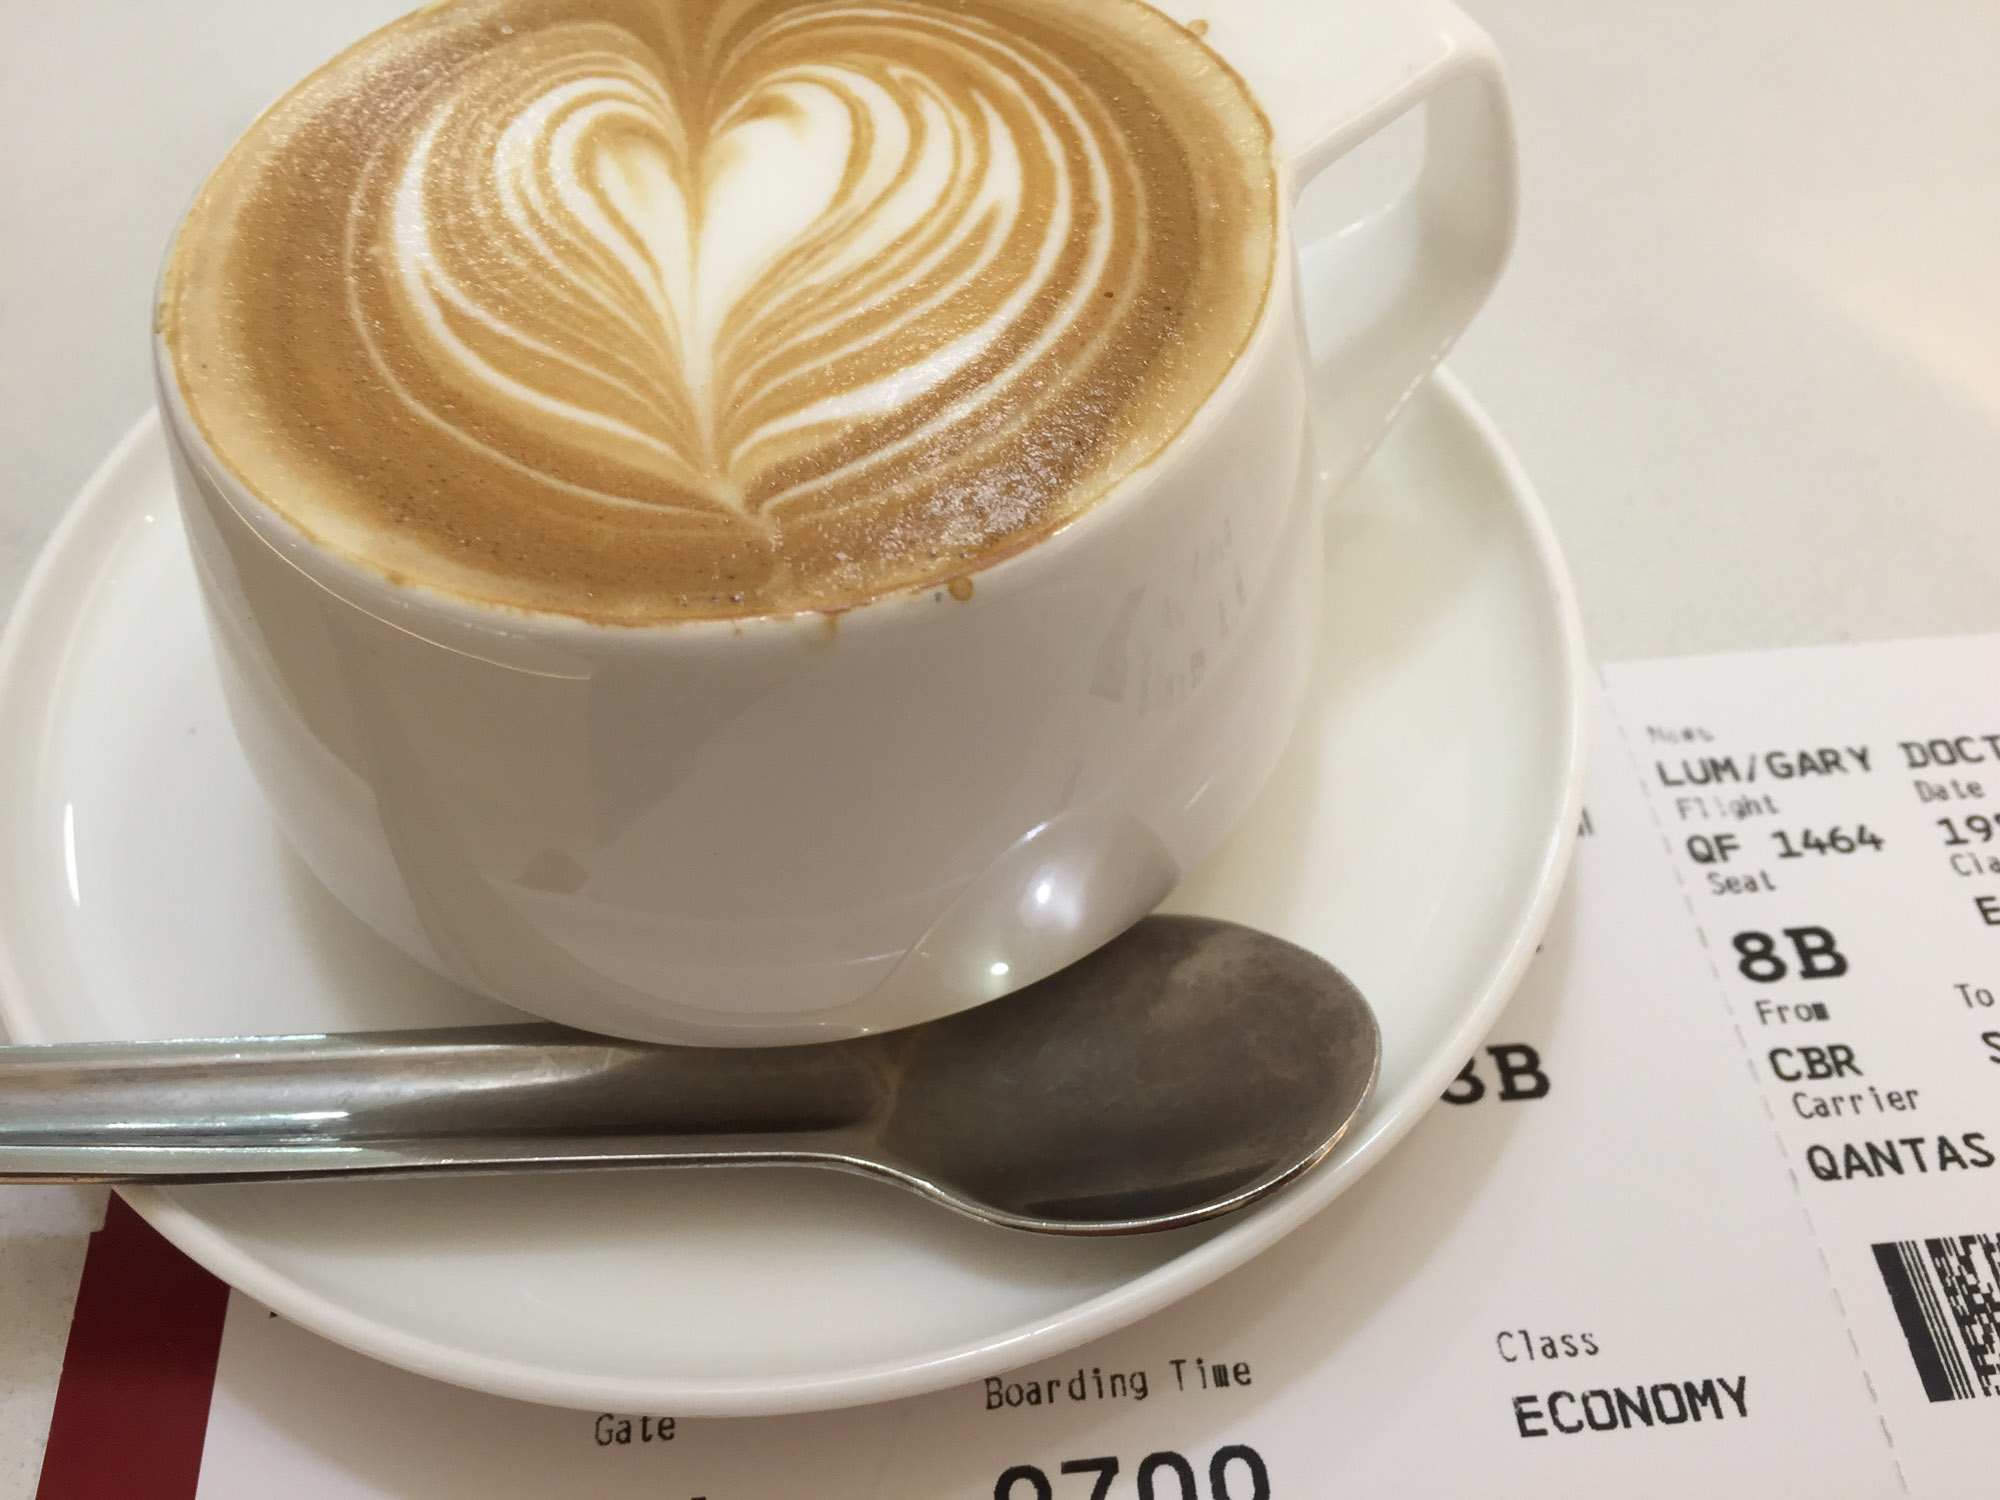 Boarding pass and coffee QF1464